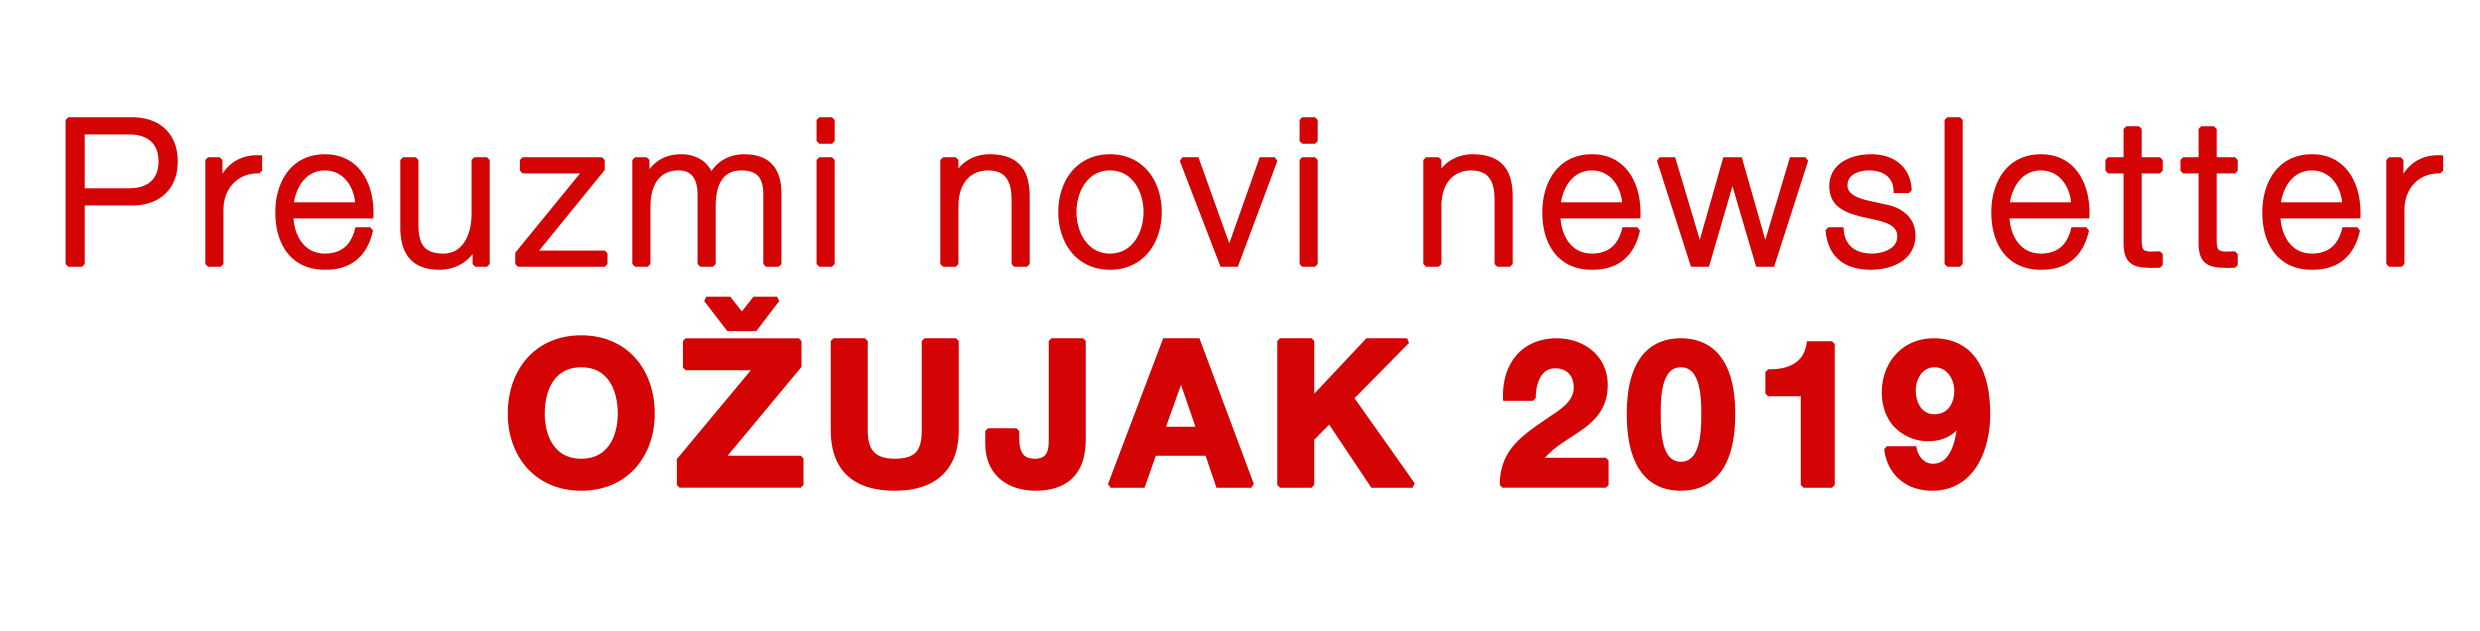 newsletter ozujak 2019